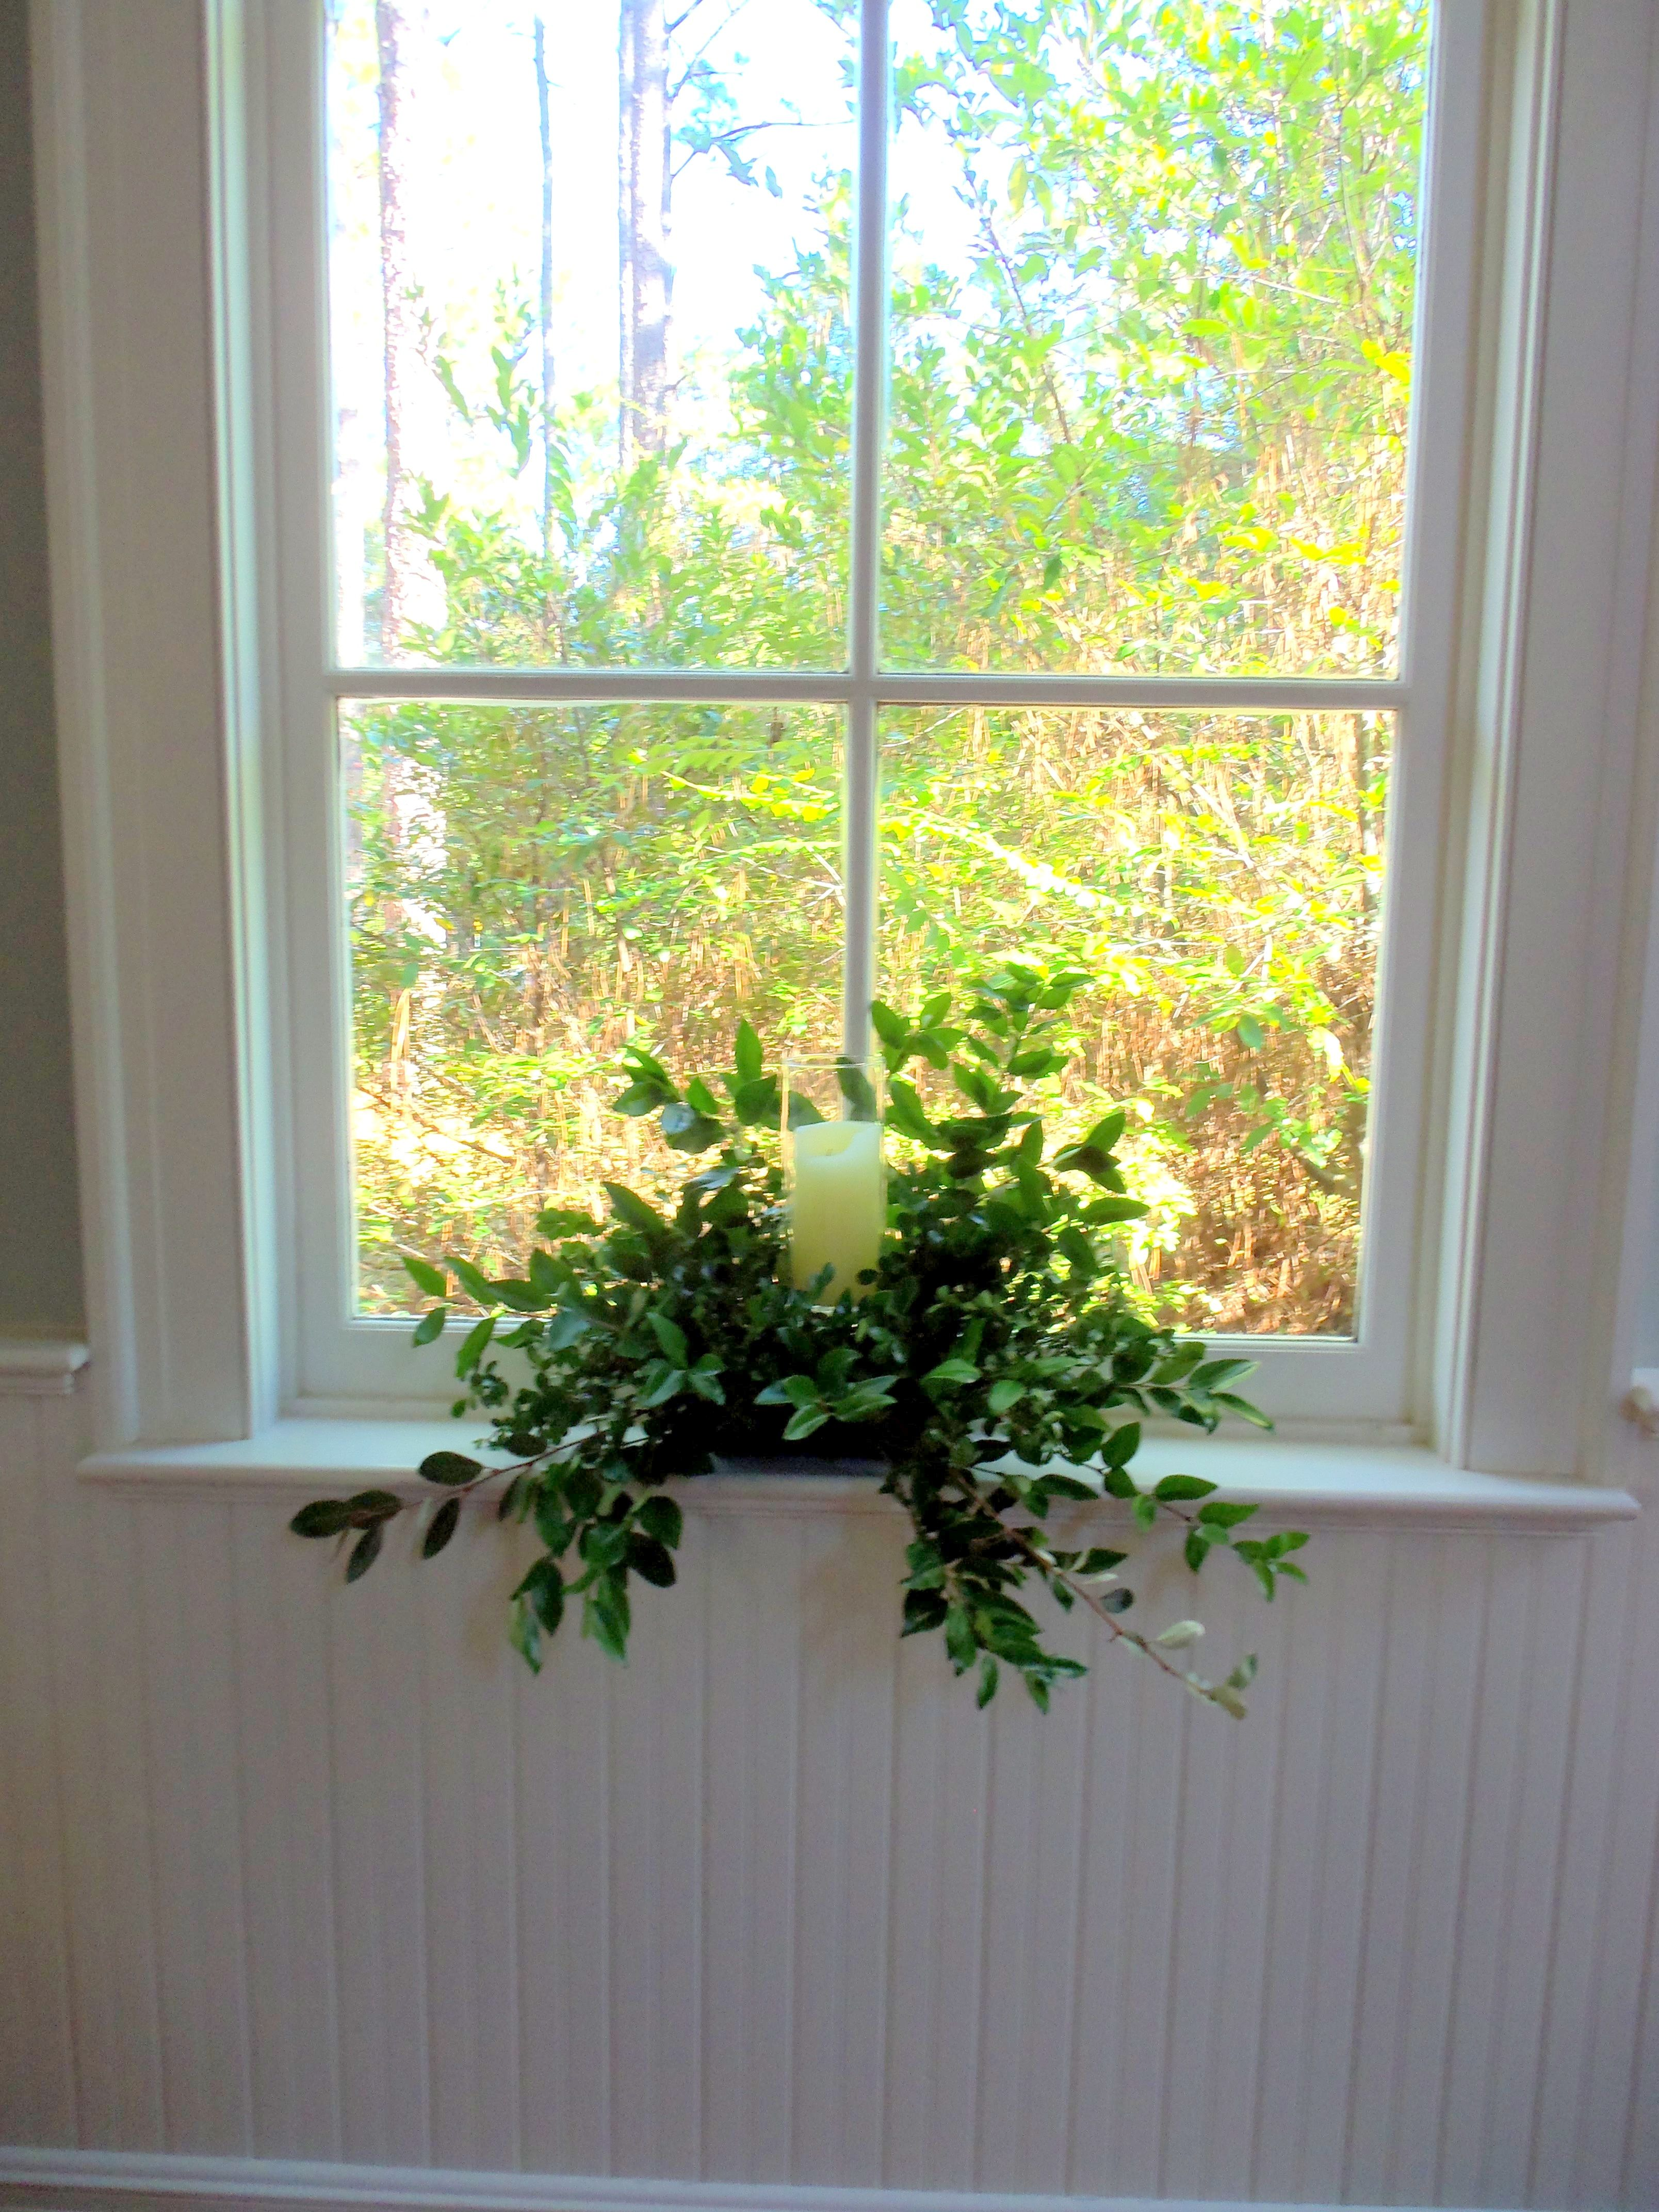 Candles and greenery to accent the church windows ...